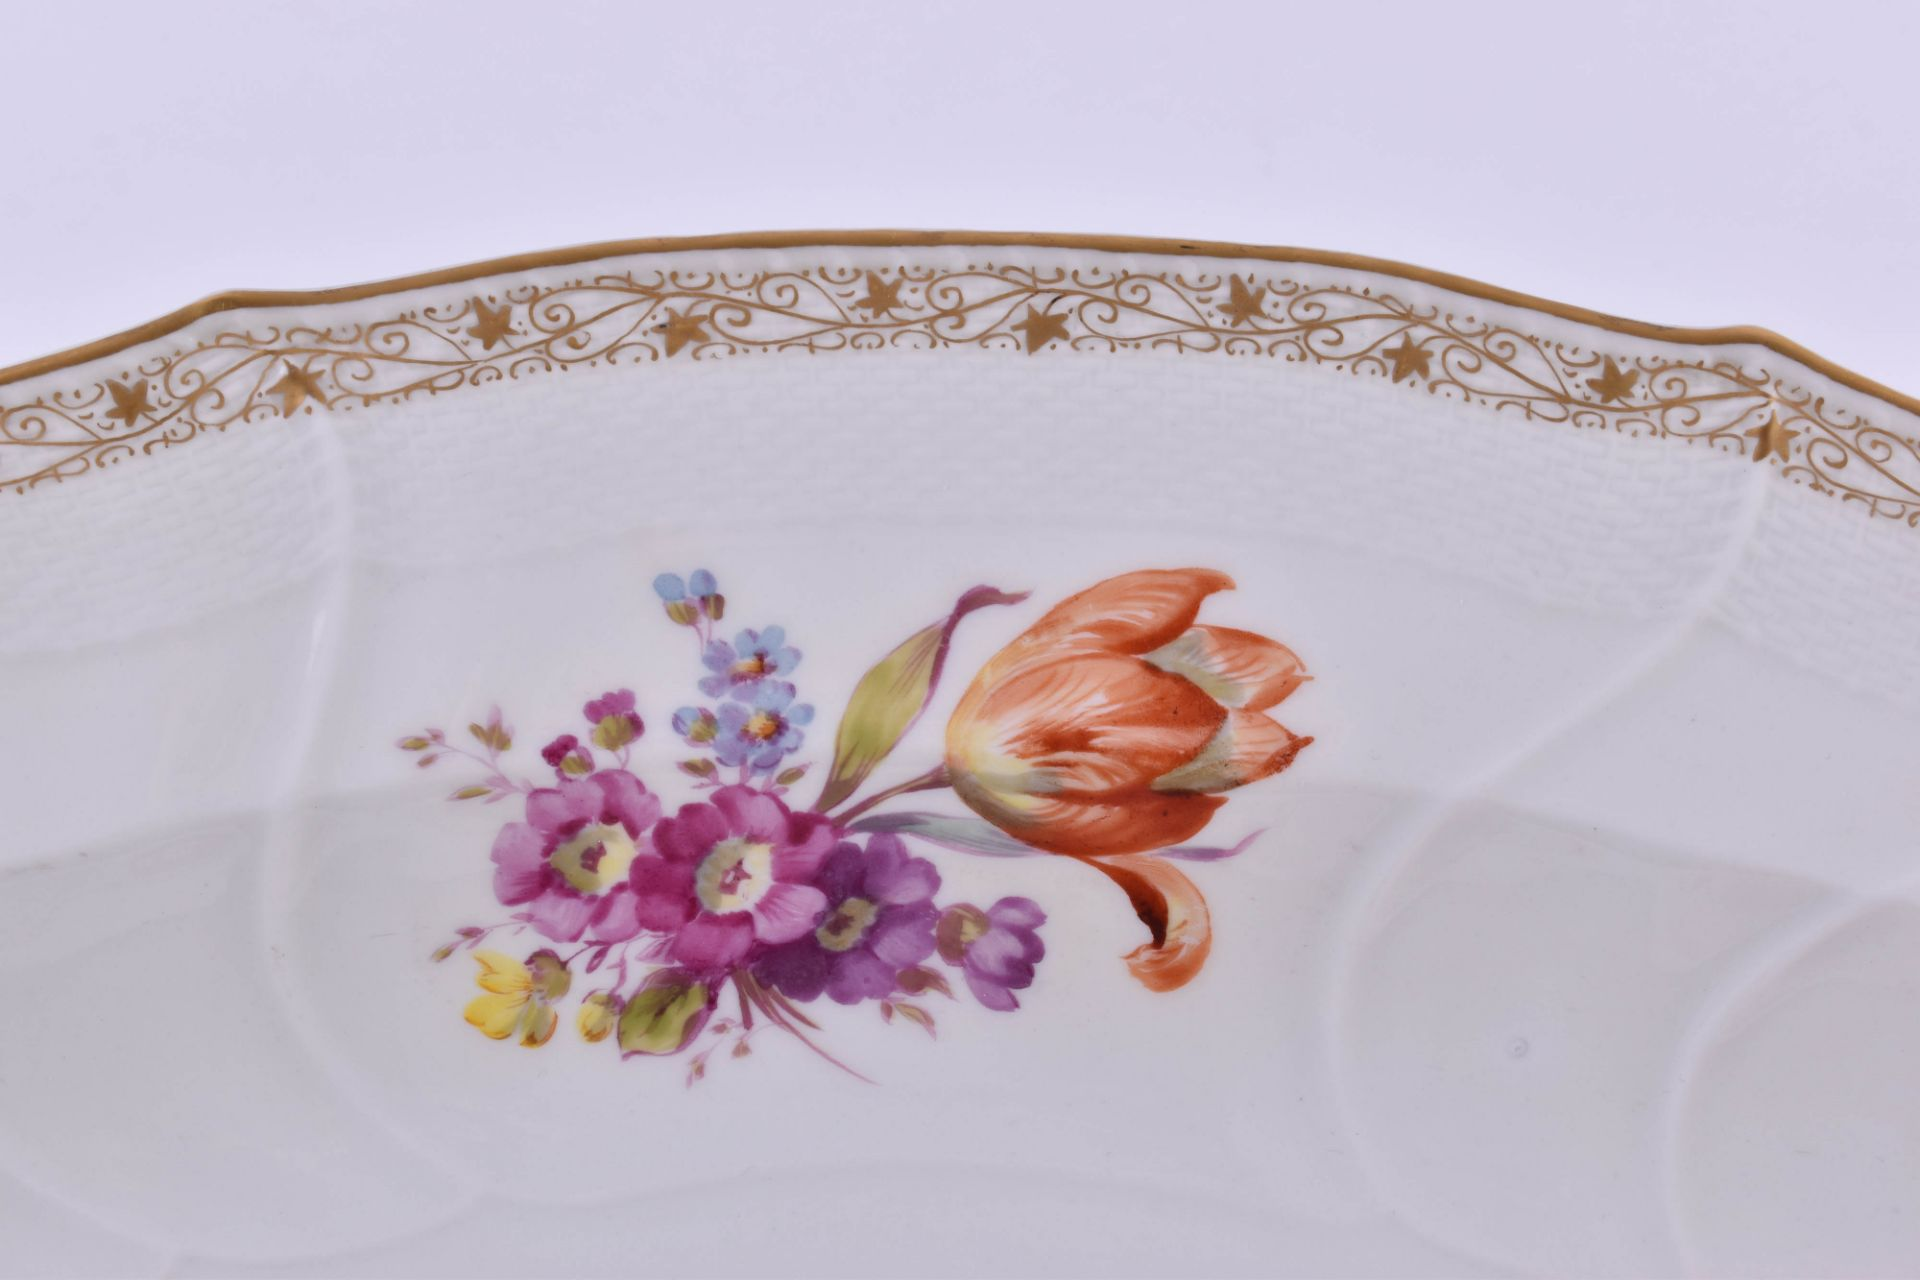 Large meat platter KPM Berlin Rocaille around 1850 - Image 2 of 6